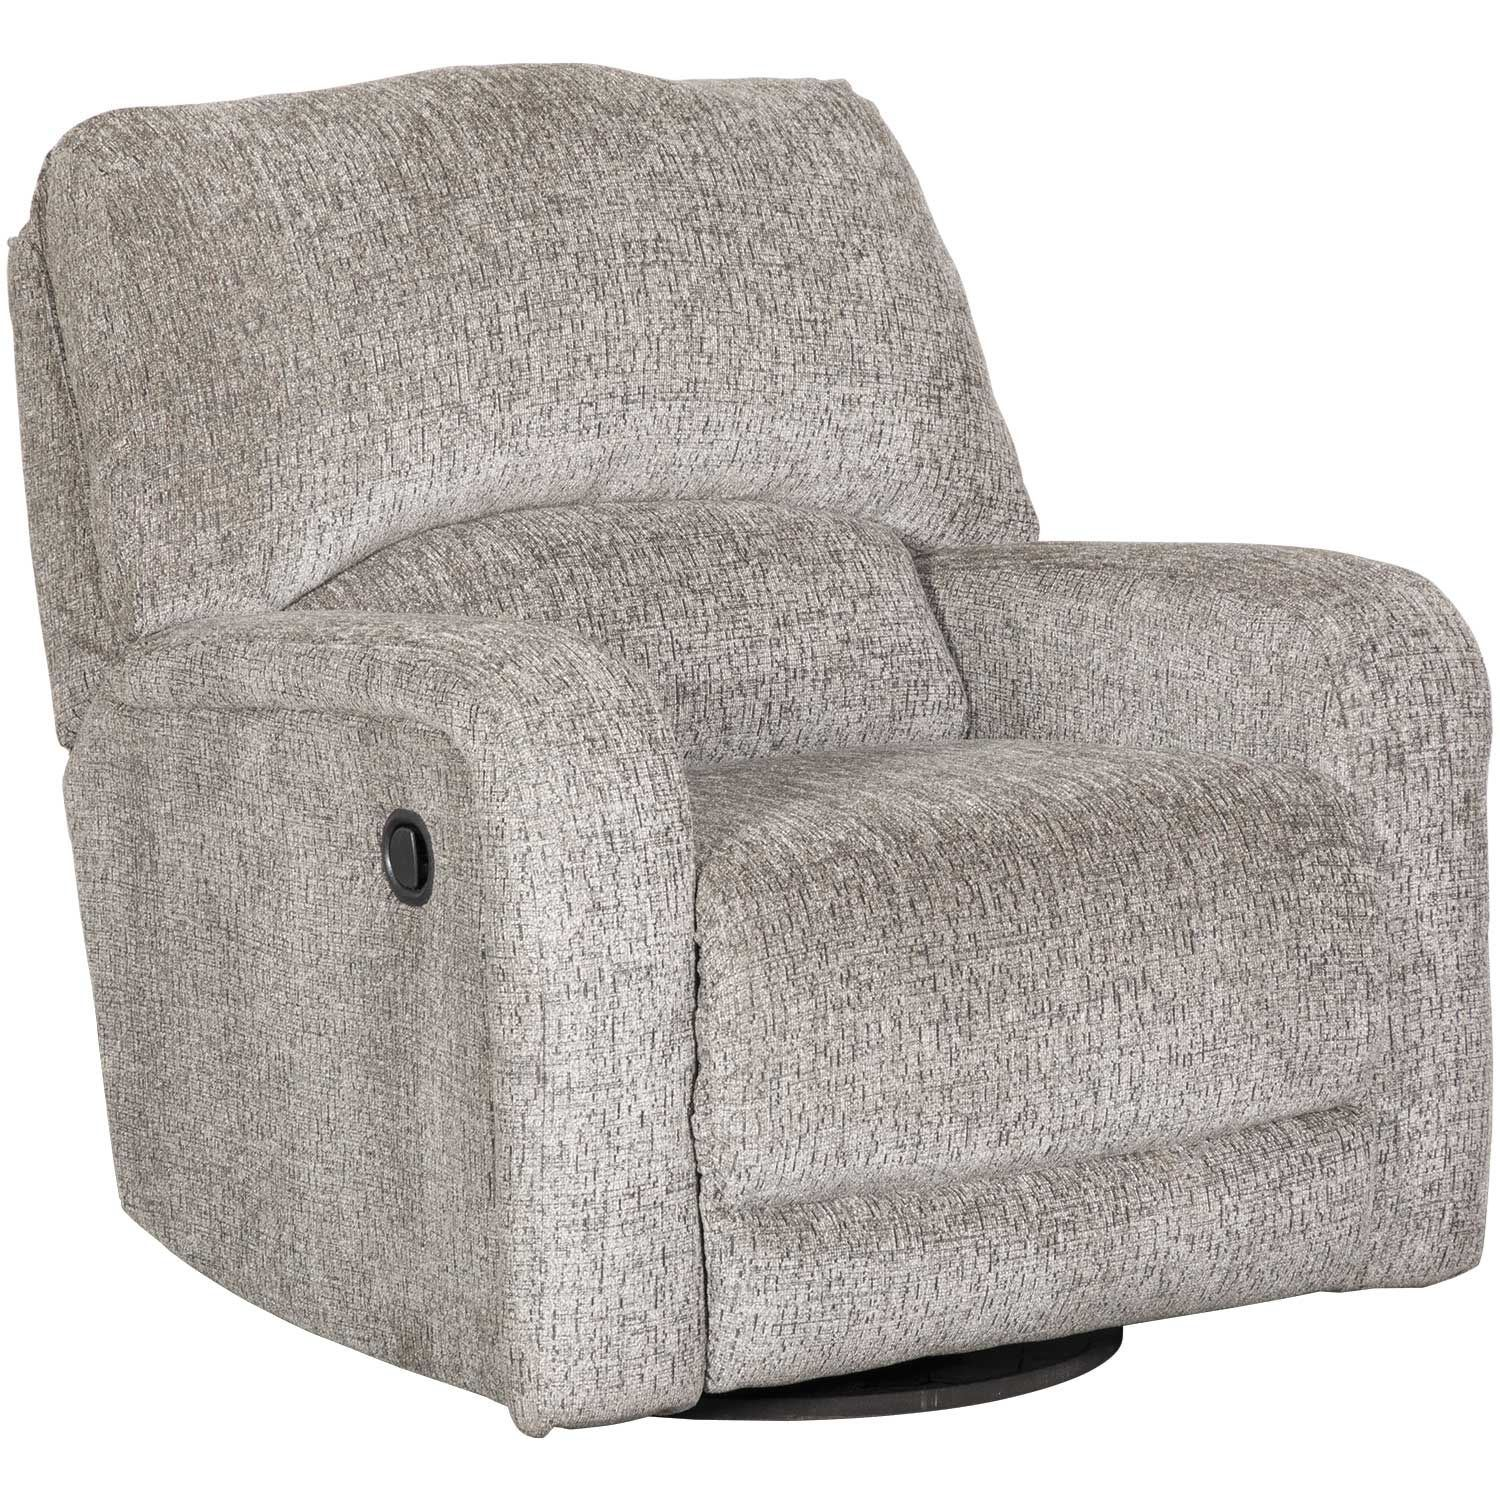 Astonishing Wittlich Slate Swivel Glider Recliner Caraccident5 Cool Chair Designs And Ideas Caraccident5Info